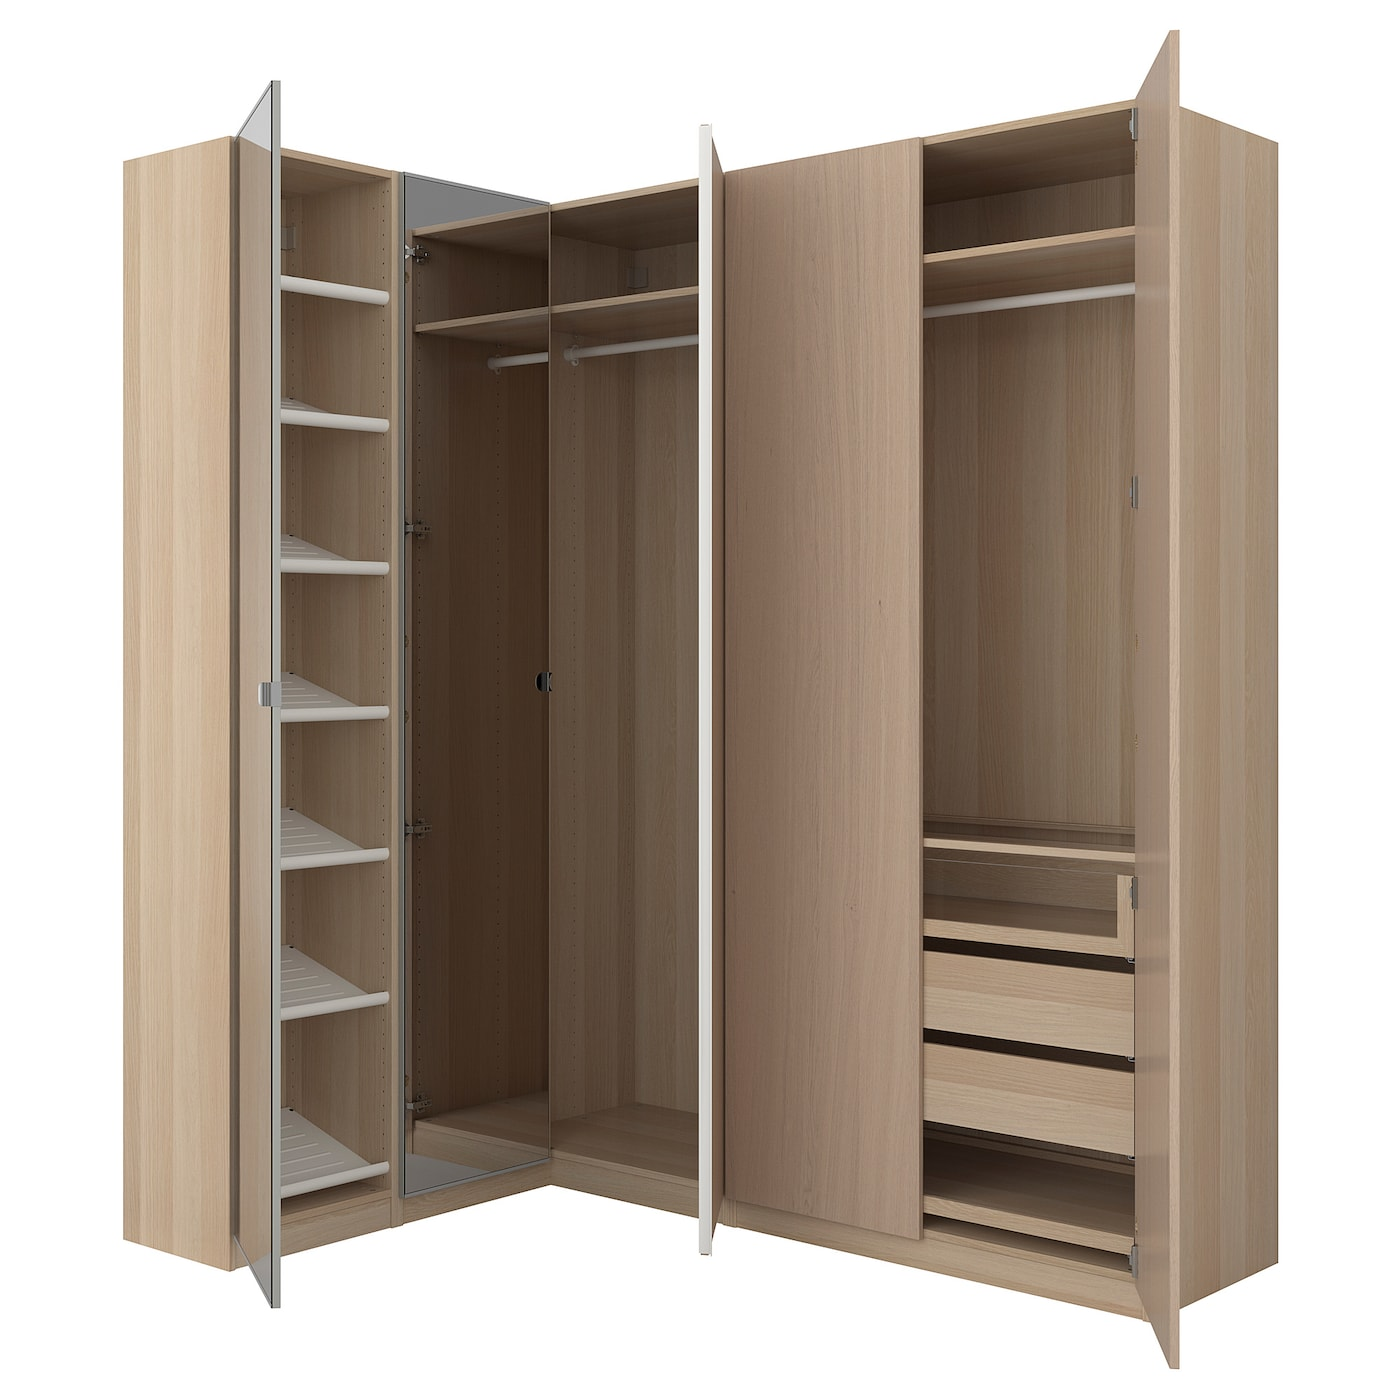 Ikea Pax Corner Wardrobe 10 Year Guarantee Read About The Terms In Brochure